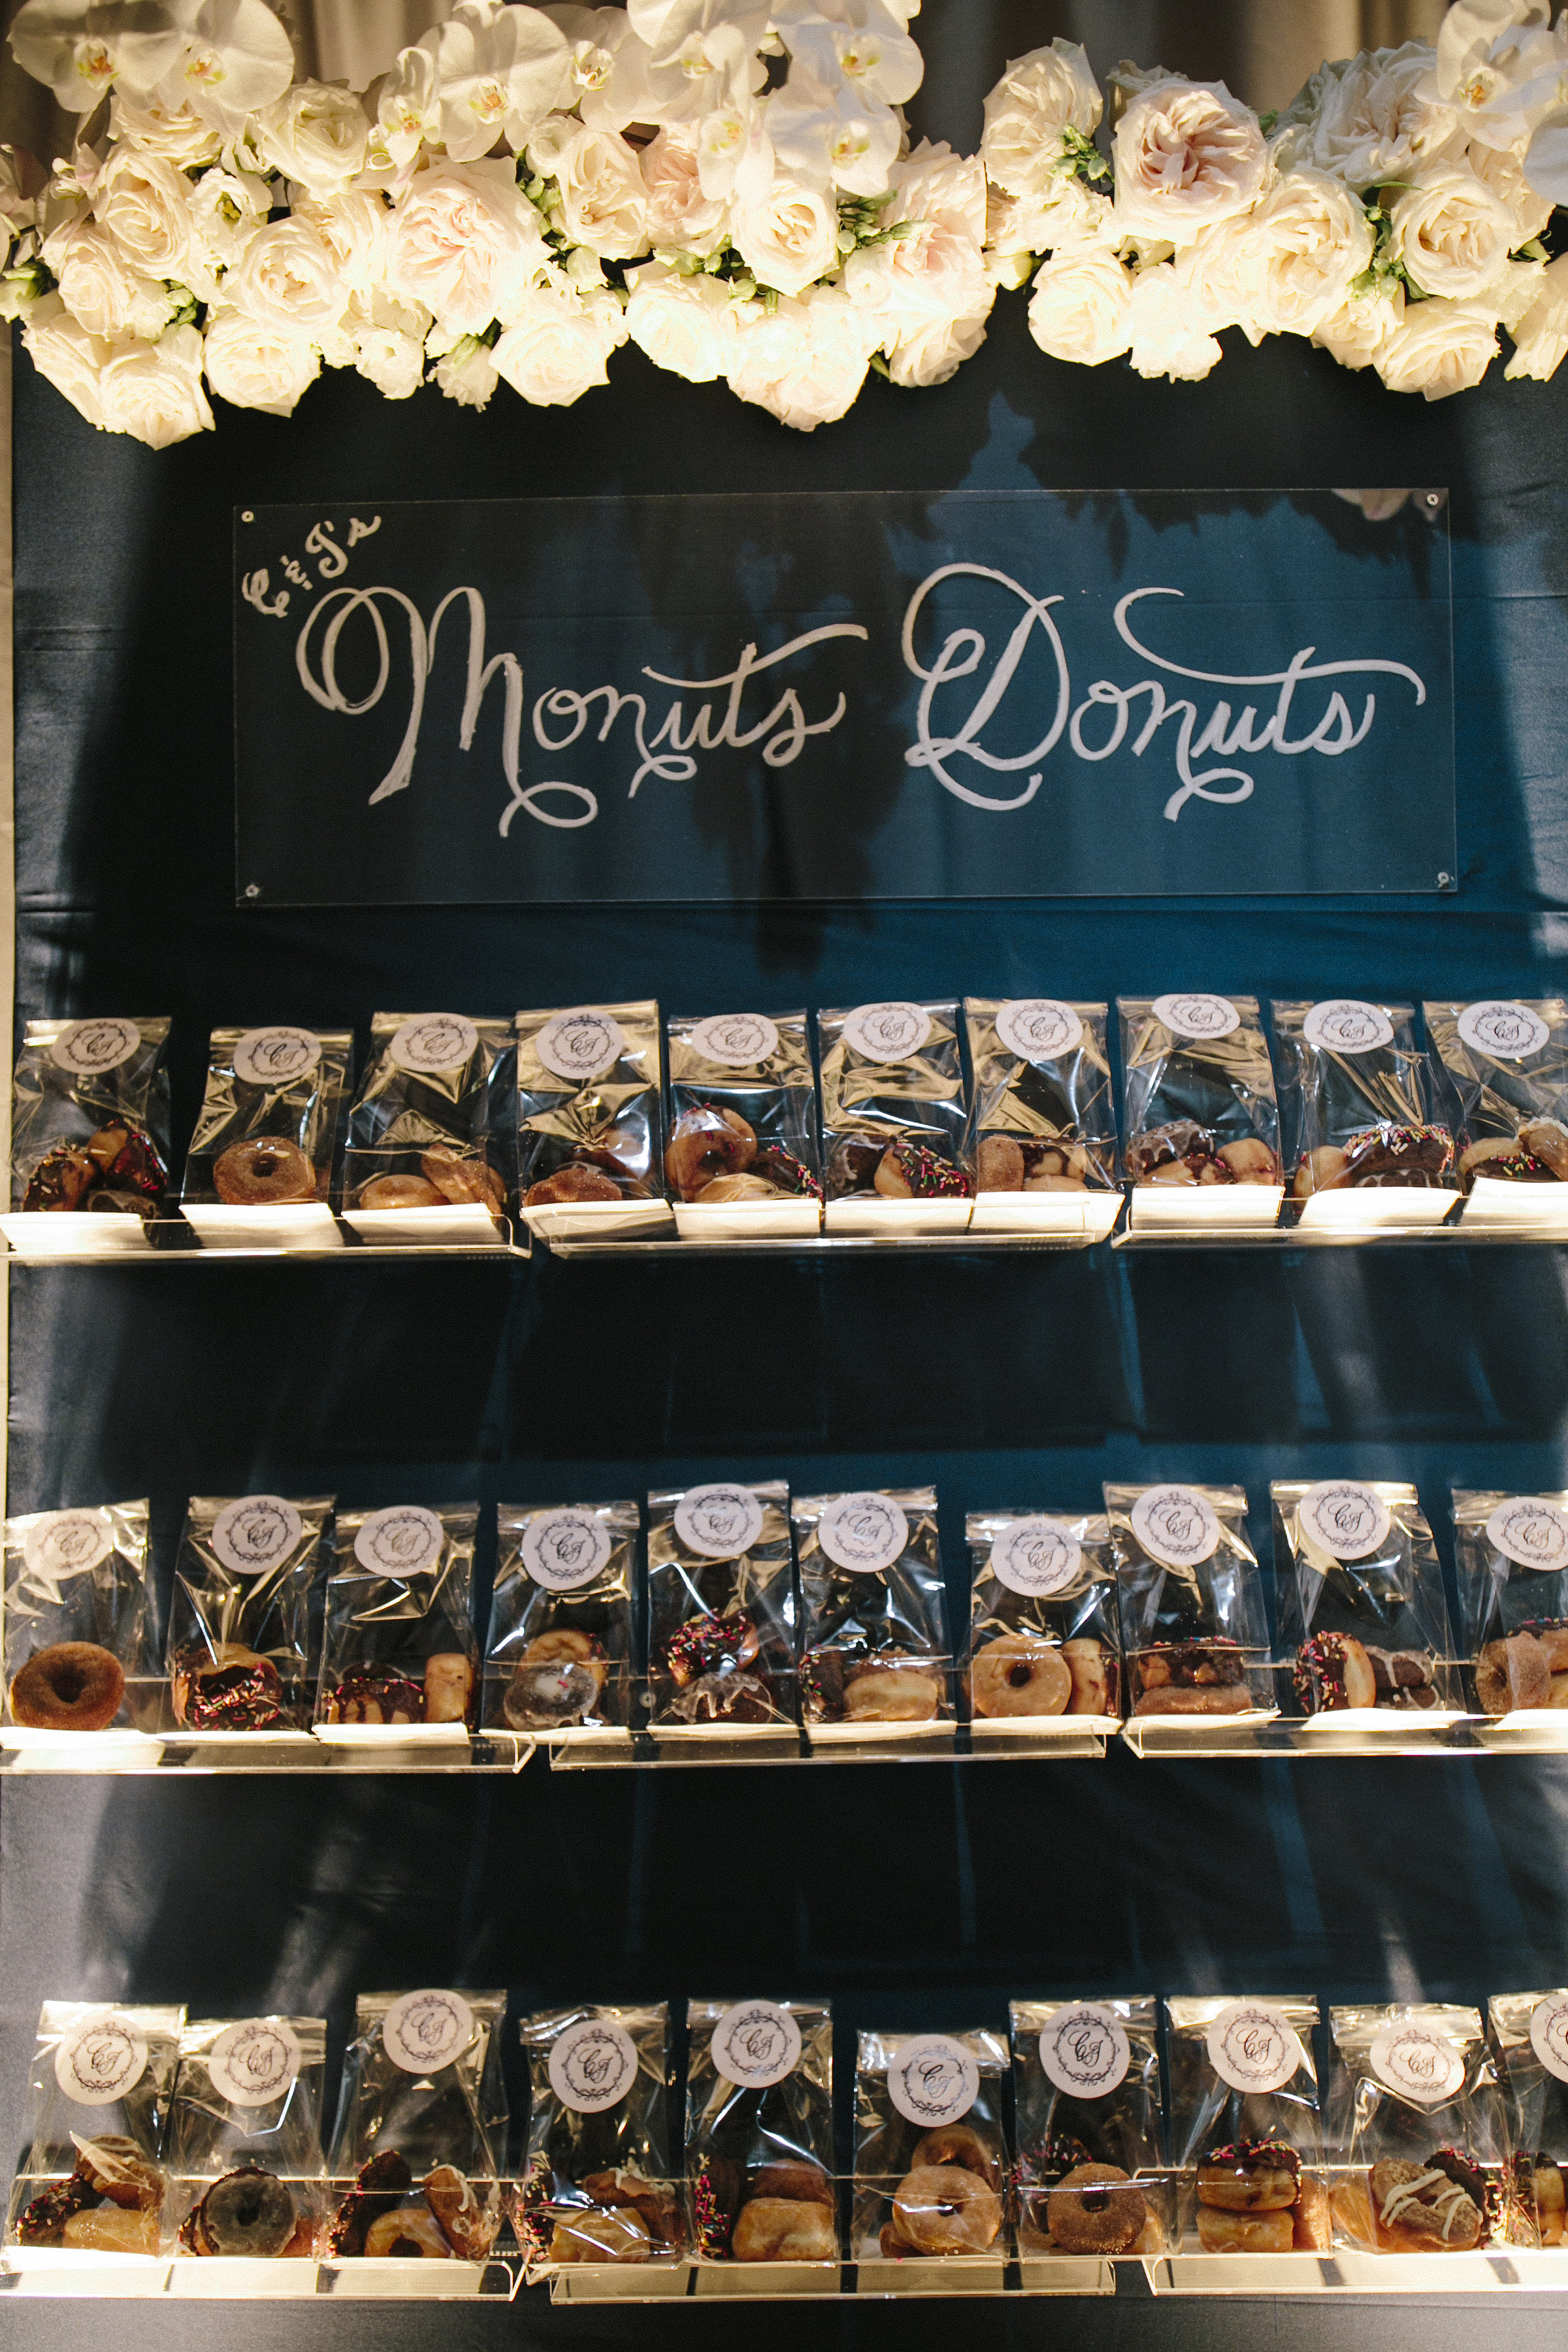 Donut wedding favors by Monut's Donuts NC